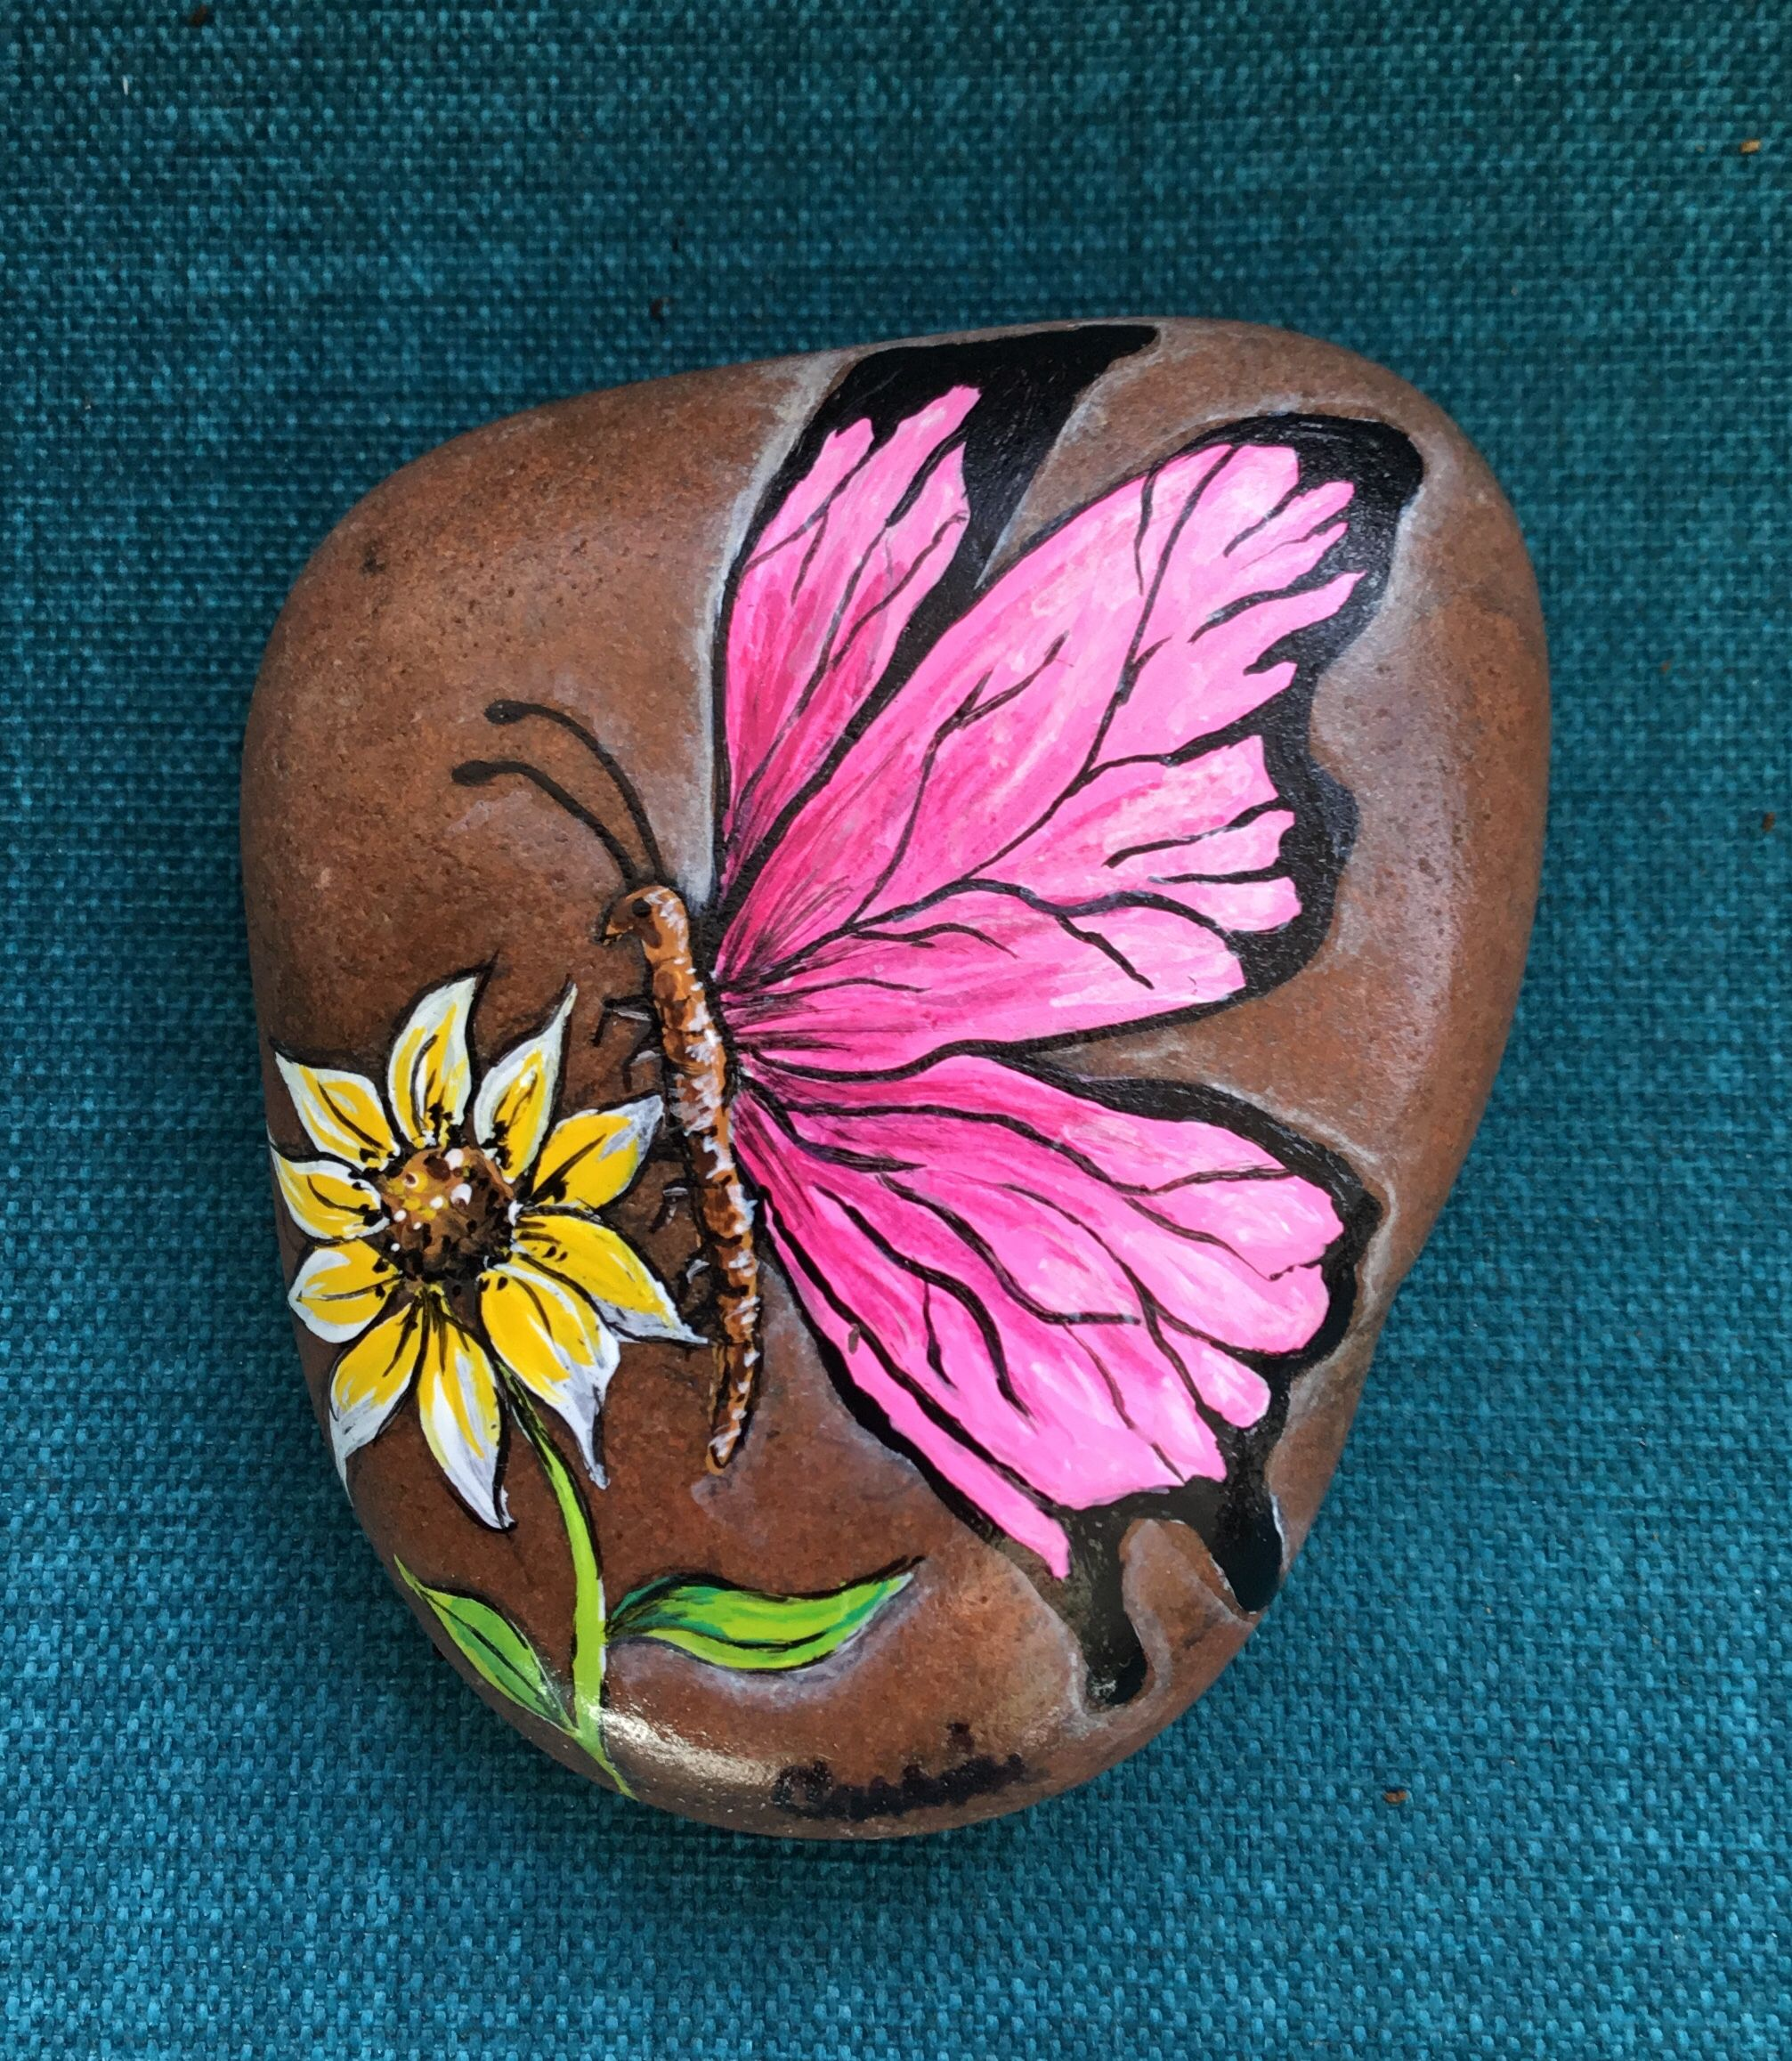 180 Butterfly Painted On Rock S Ideas In 2021 Butterfly Painting Painted Rocks Stone Painting